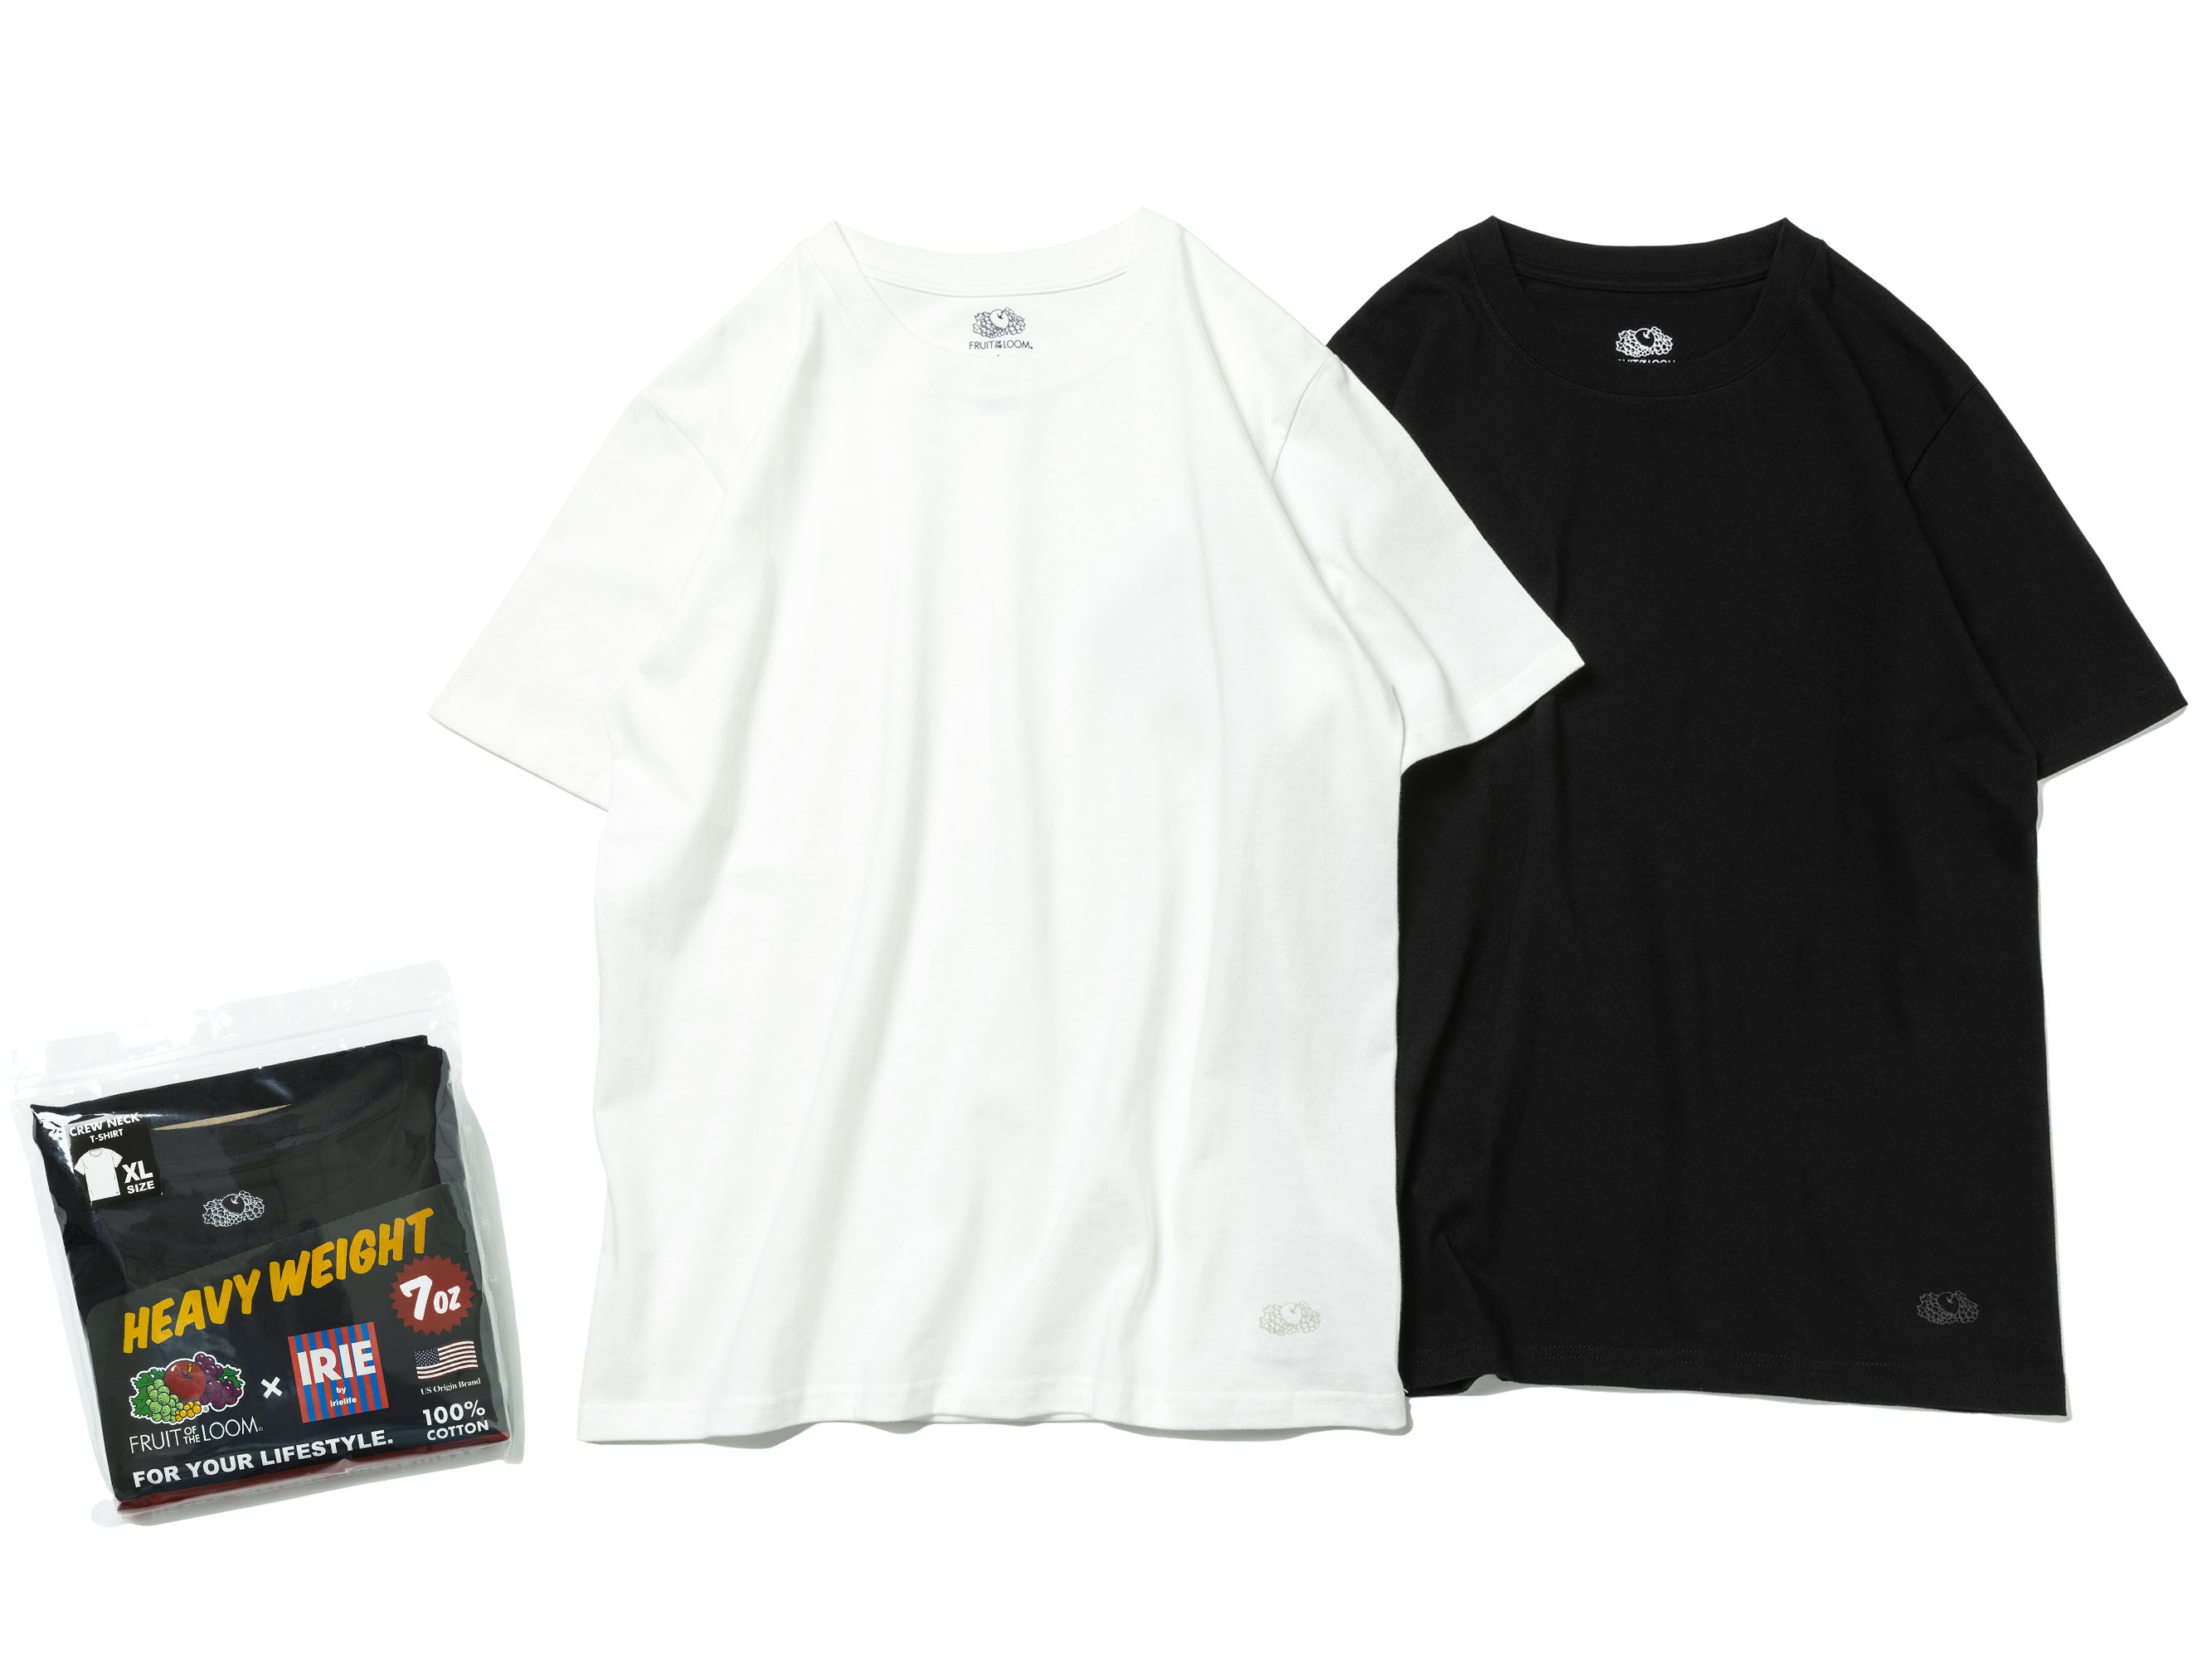 × FRUIT OF THE LOOM PACK TEE - IRIE by irielife